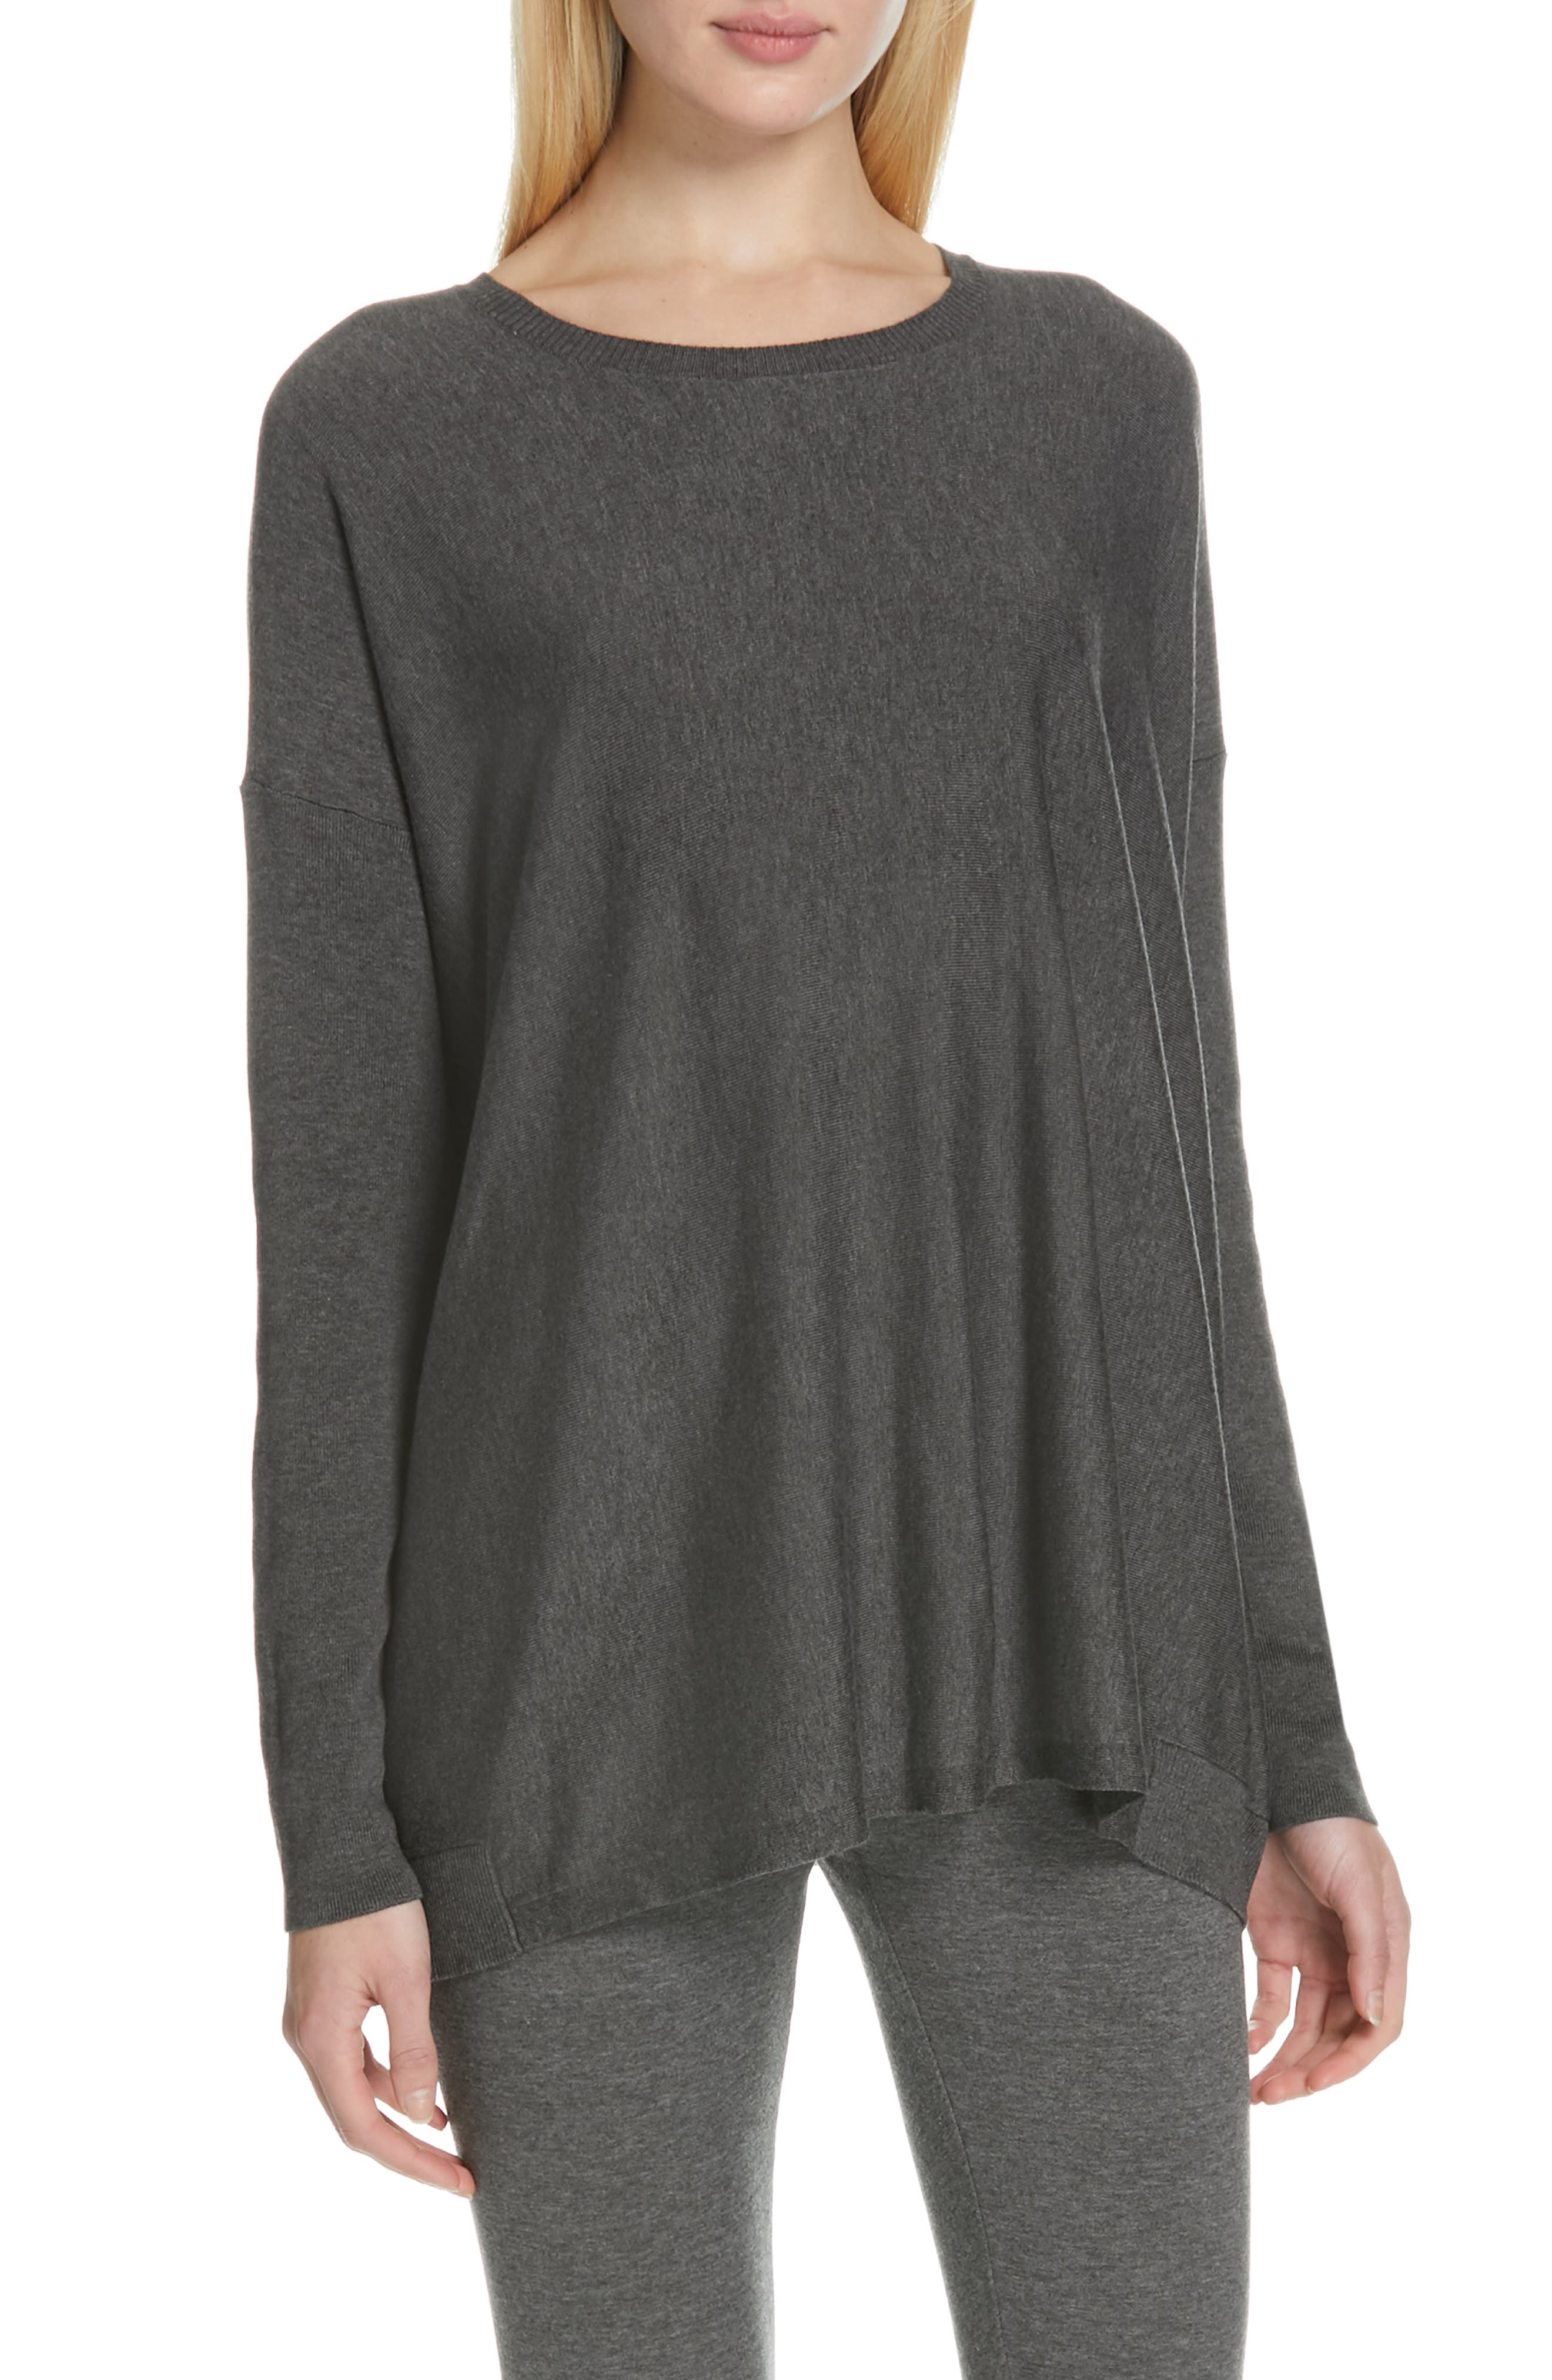 EILEEN FISHER, Tencel<sup>®</sup> Lyocell Blend Sweater, Main thumbnail 1, color, 030